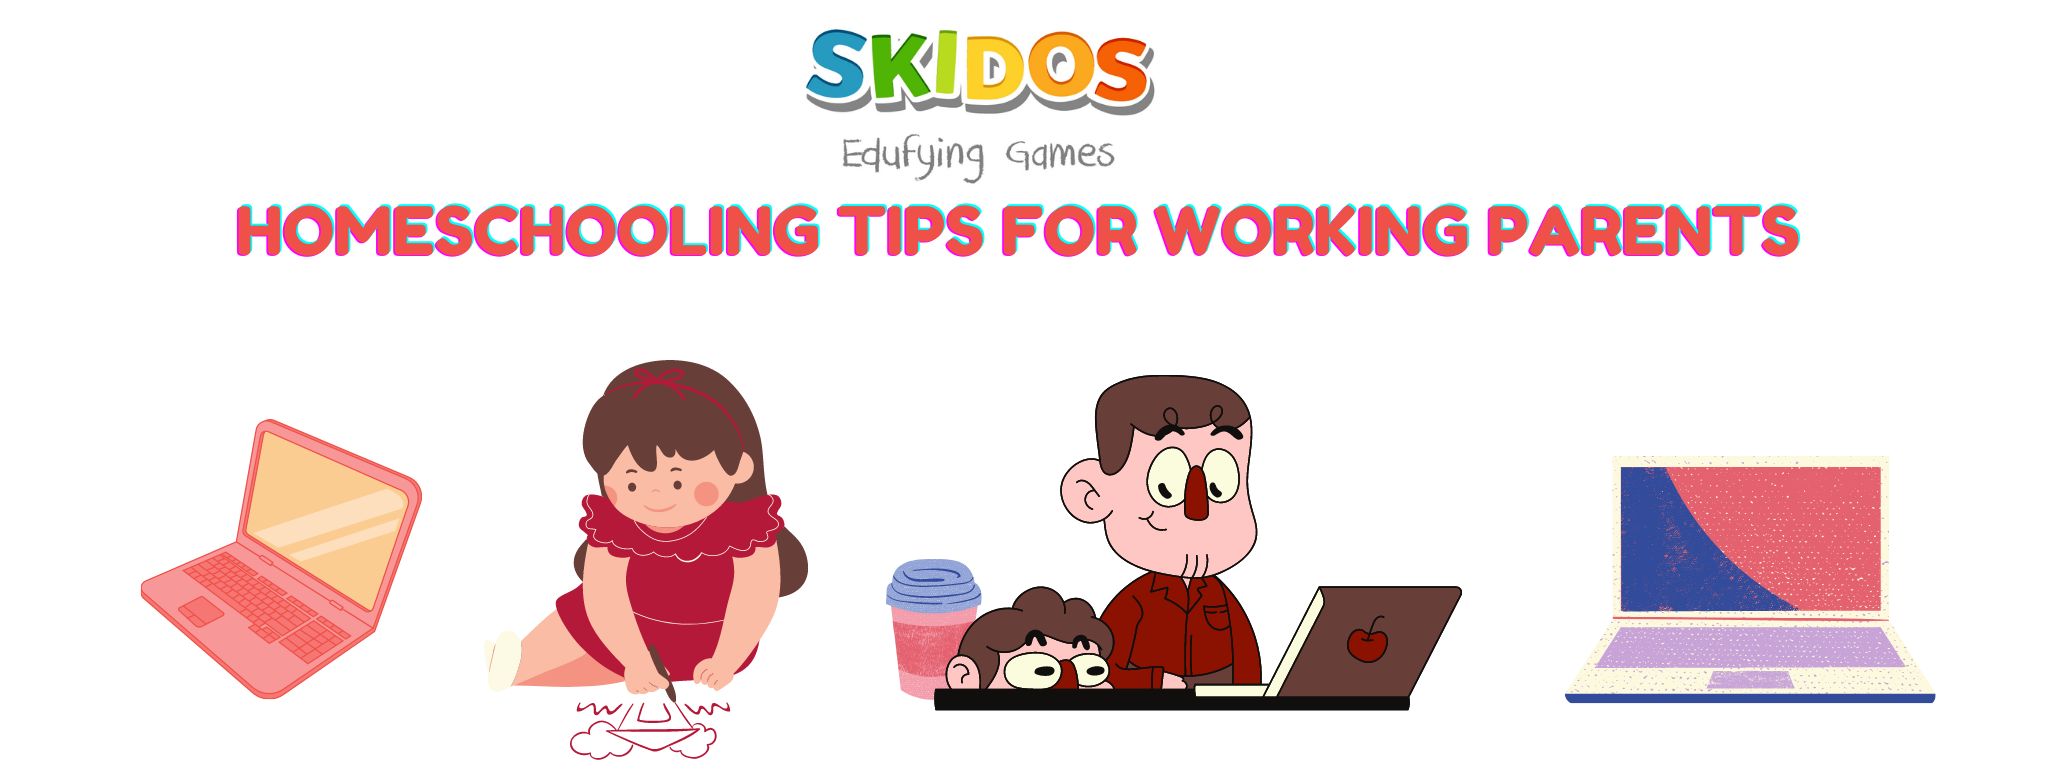 Homeschooling for working parents: Tips, Resources [Newest]